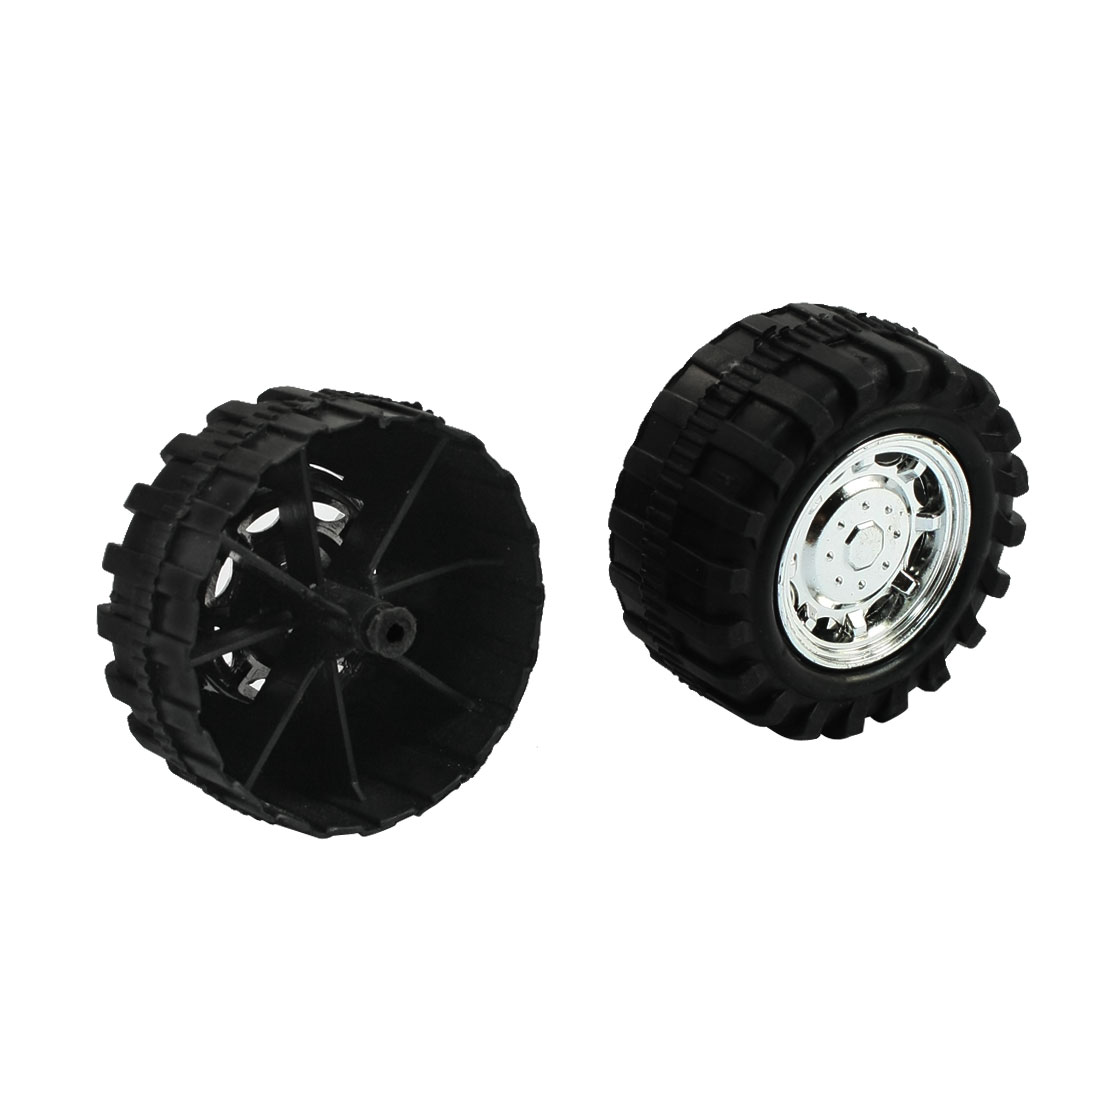 2pcs 55mm Dia Roll Plastic Core Toy Vehicles Car Wheels for Child